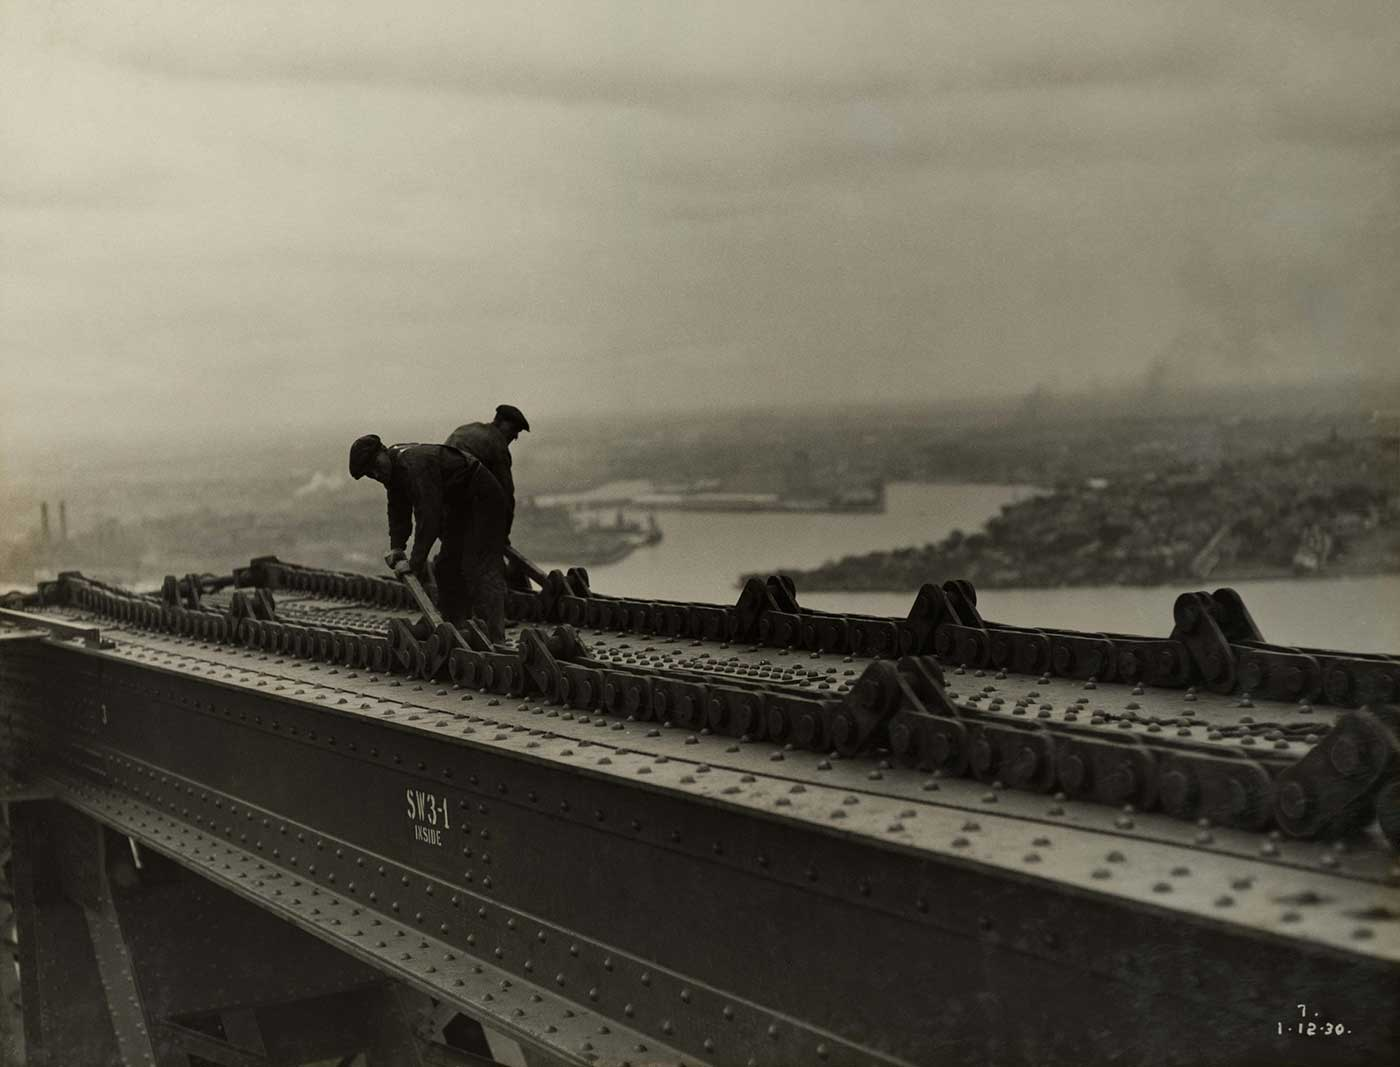 Two workers adjust the track for a 'creeper' crane atop a metal section of bridge. - click to view larger image